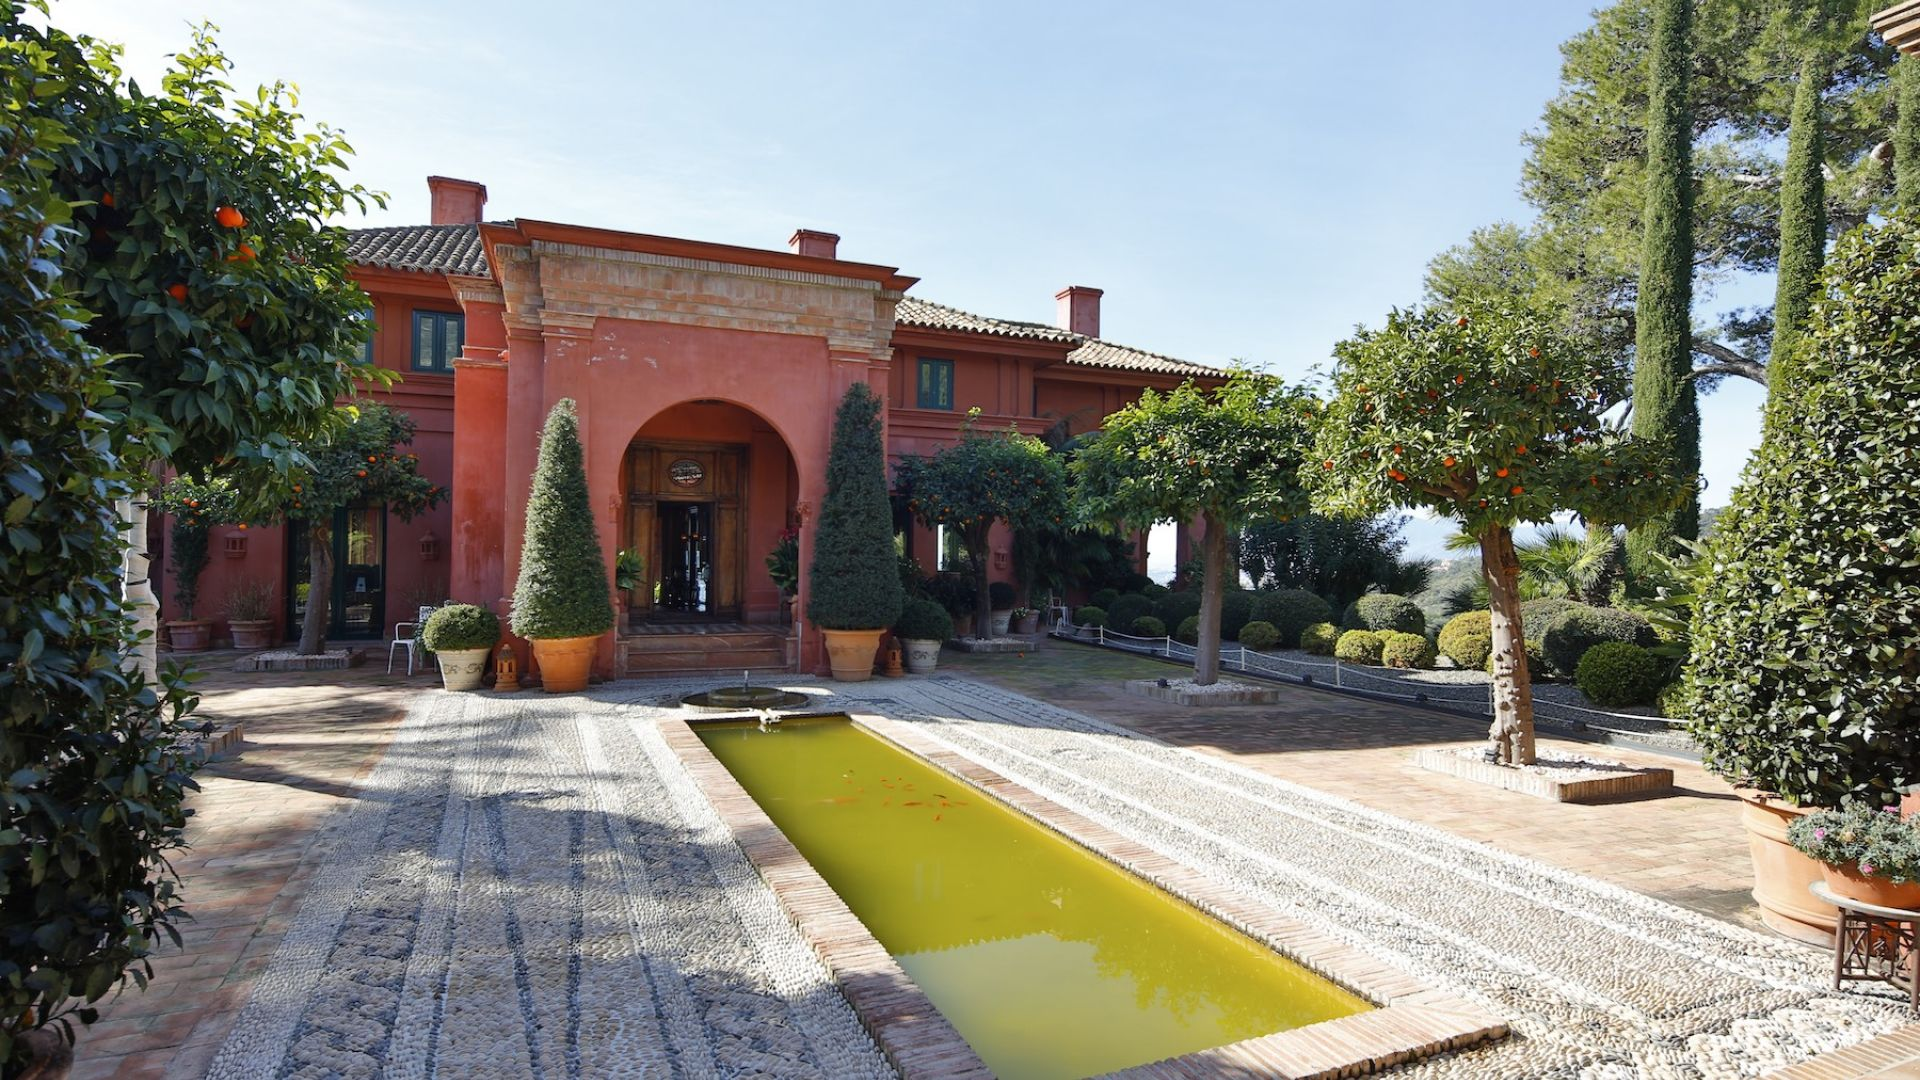 Casa Unifamiliar por un Venta en Magnificent residence located in the hills above Marbella Marbella, Costa Del Sol, 29600 España